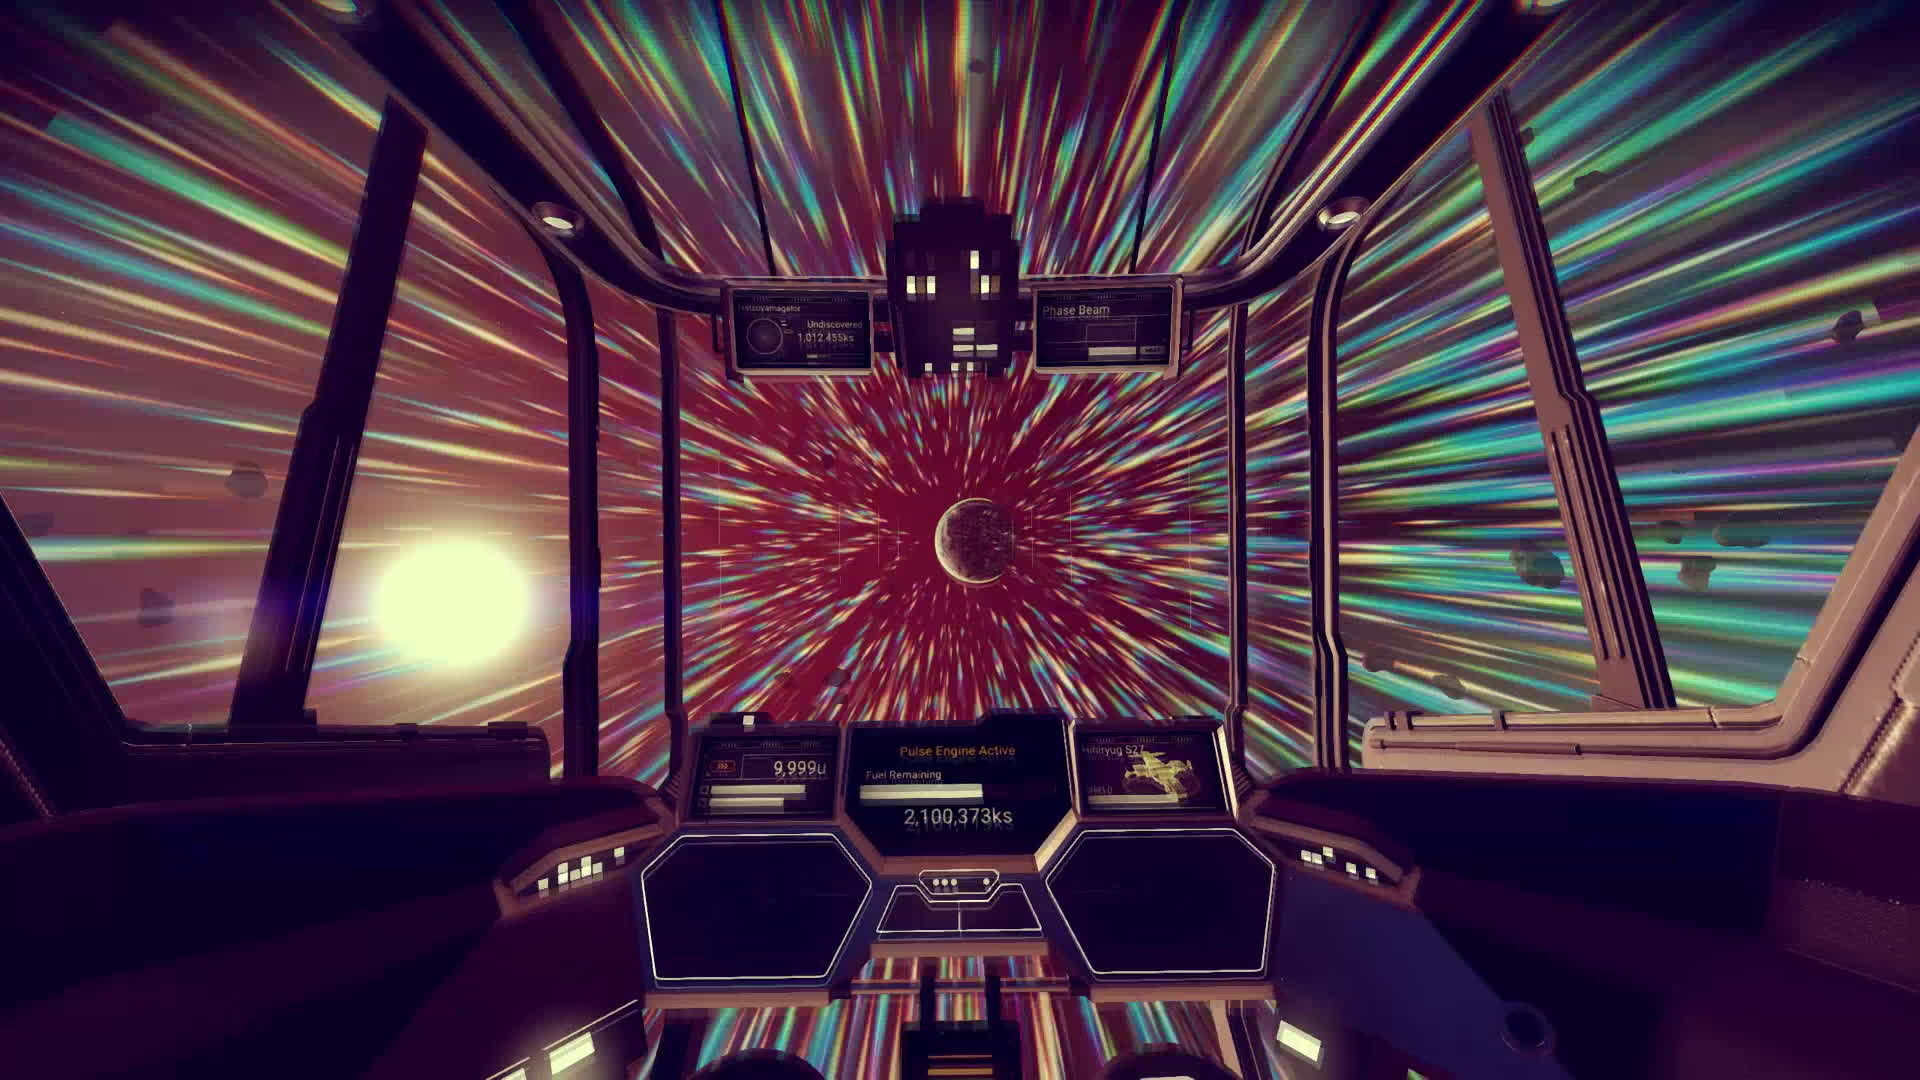 nomansskythegame, Wait for it... GIFs